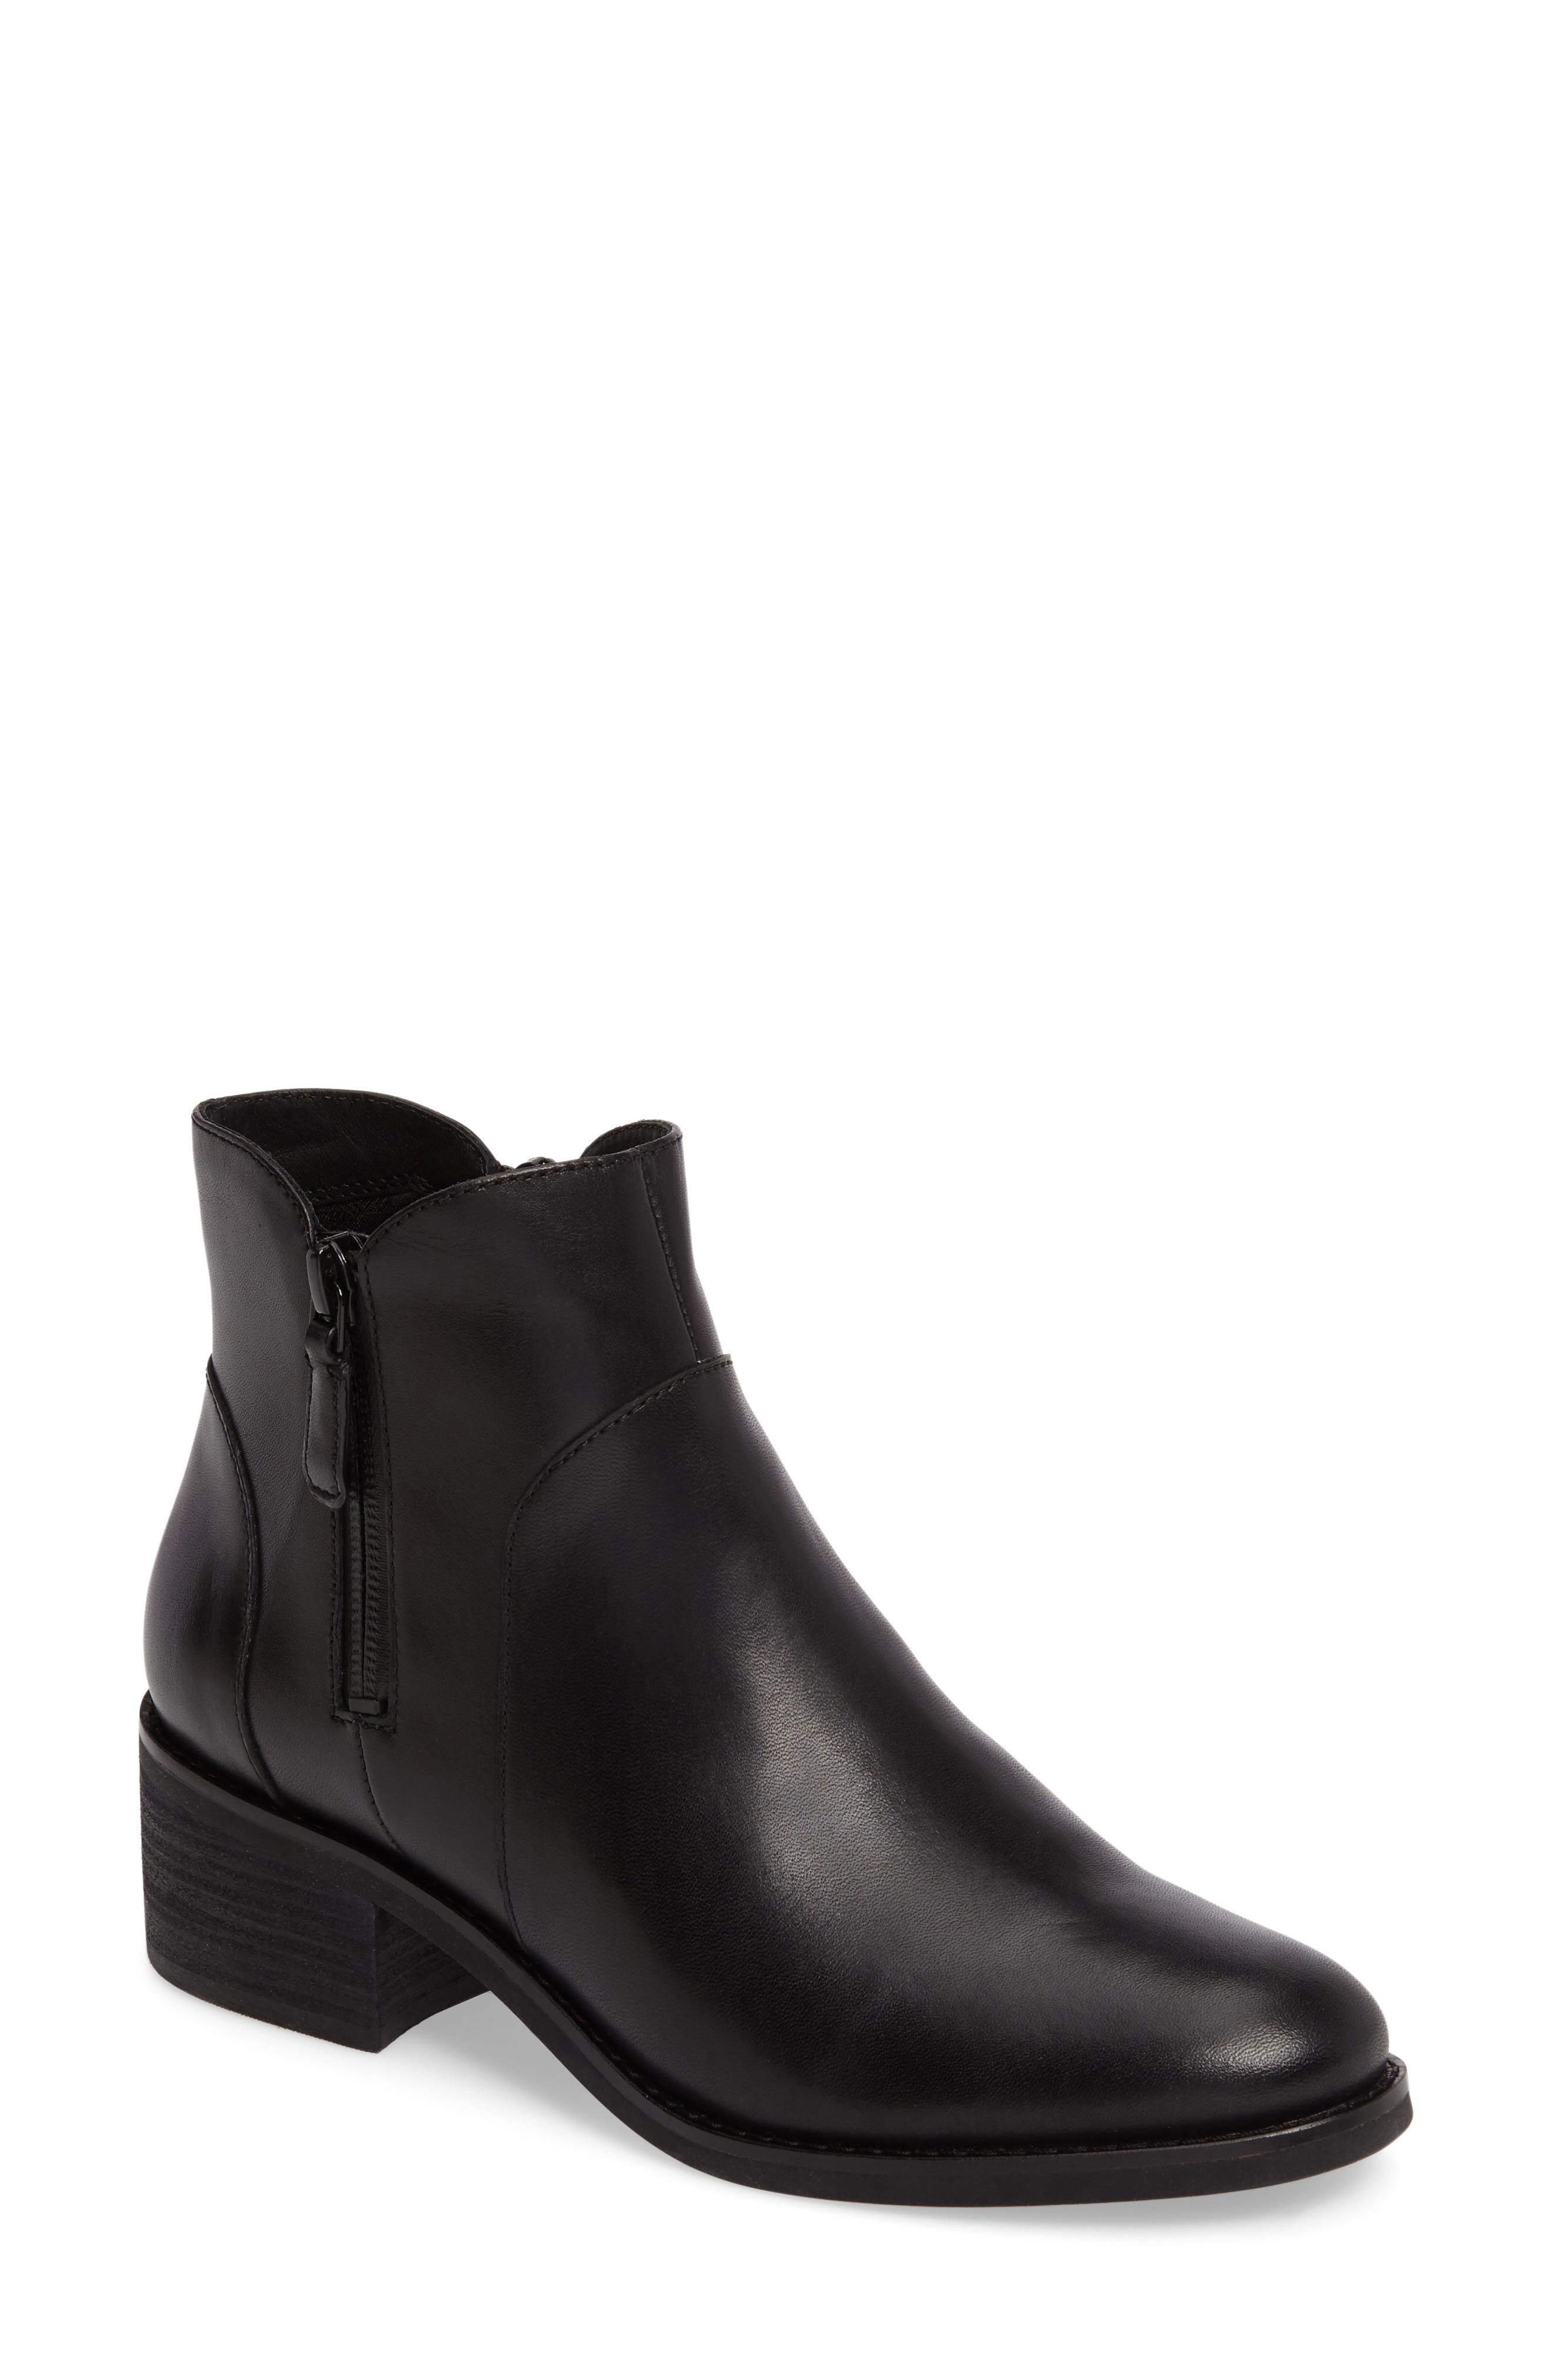 COLE HAAN Lyla Waterproof Bootie